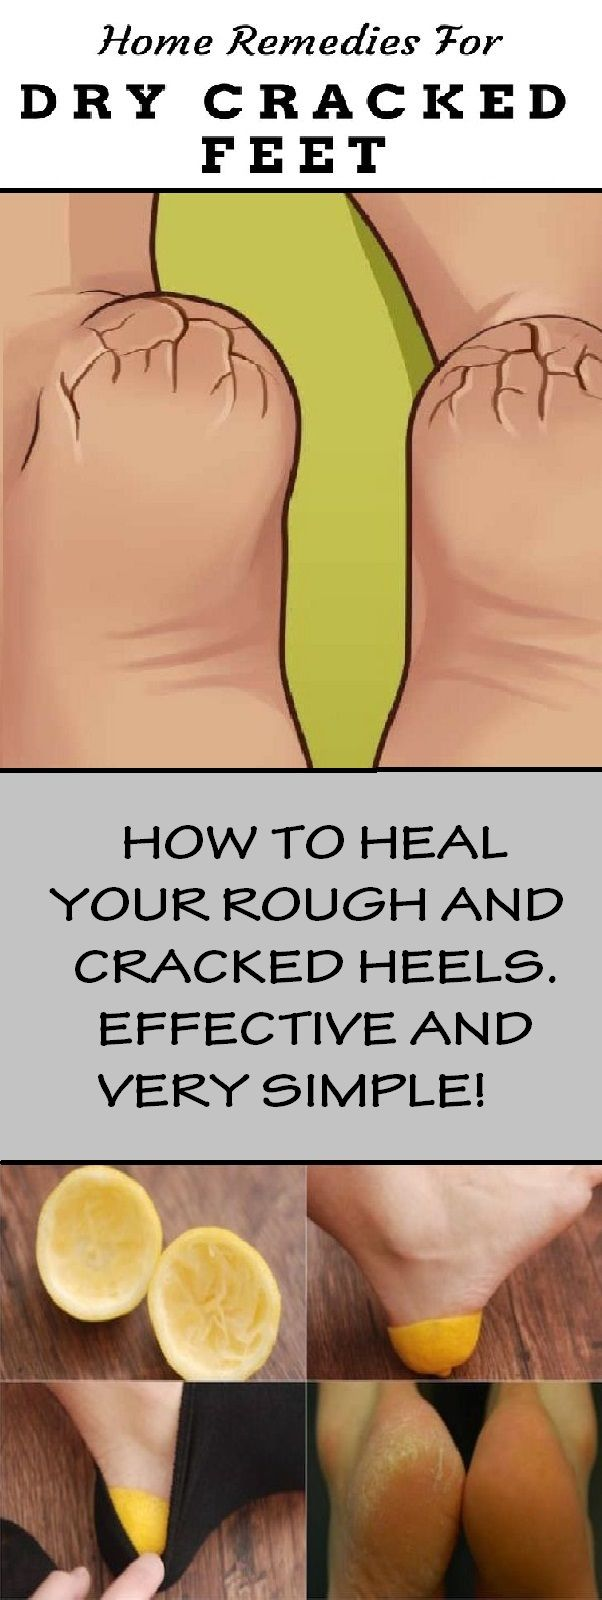 HEAL/ROUGH/CRACKED HEELS/skin/lemon